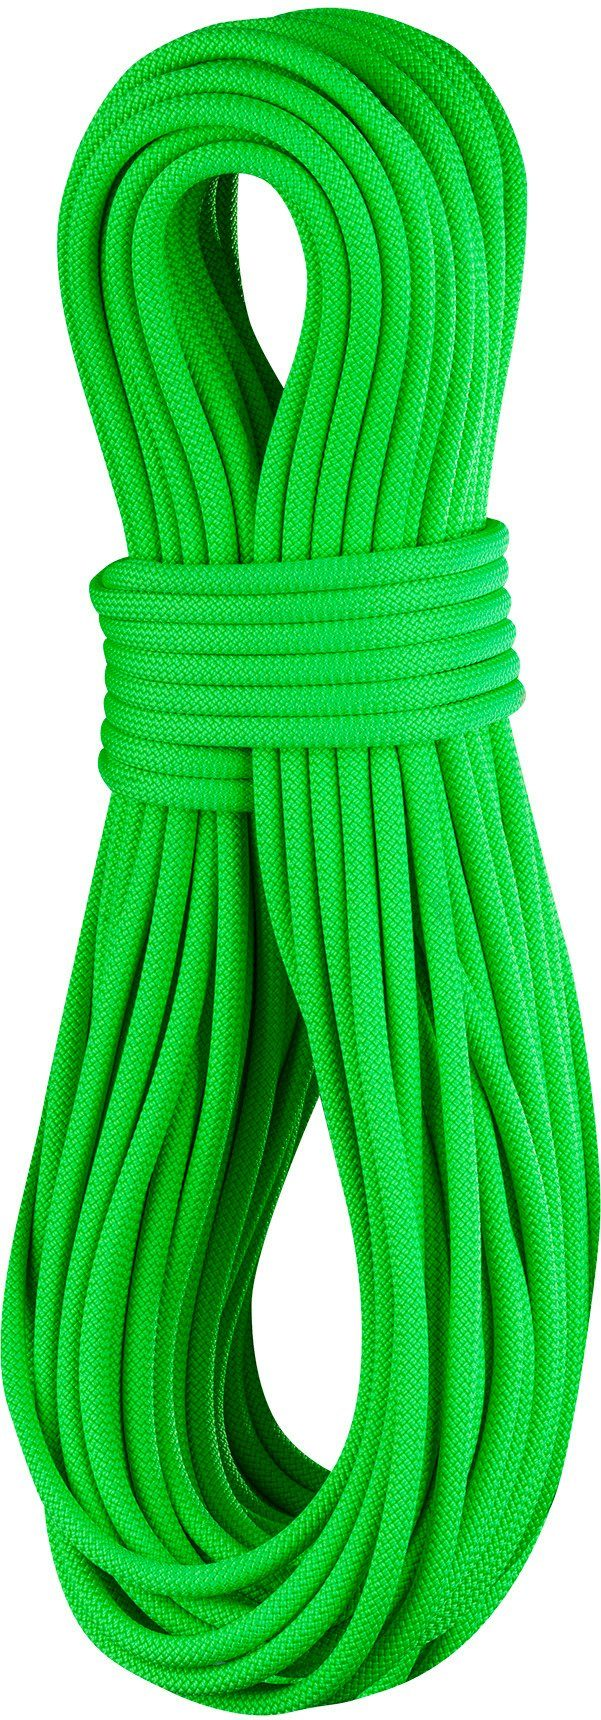 Edelrid Kletterseil »Canary Pro Dry Rope 8,6mm 50m«